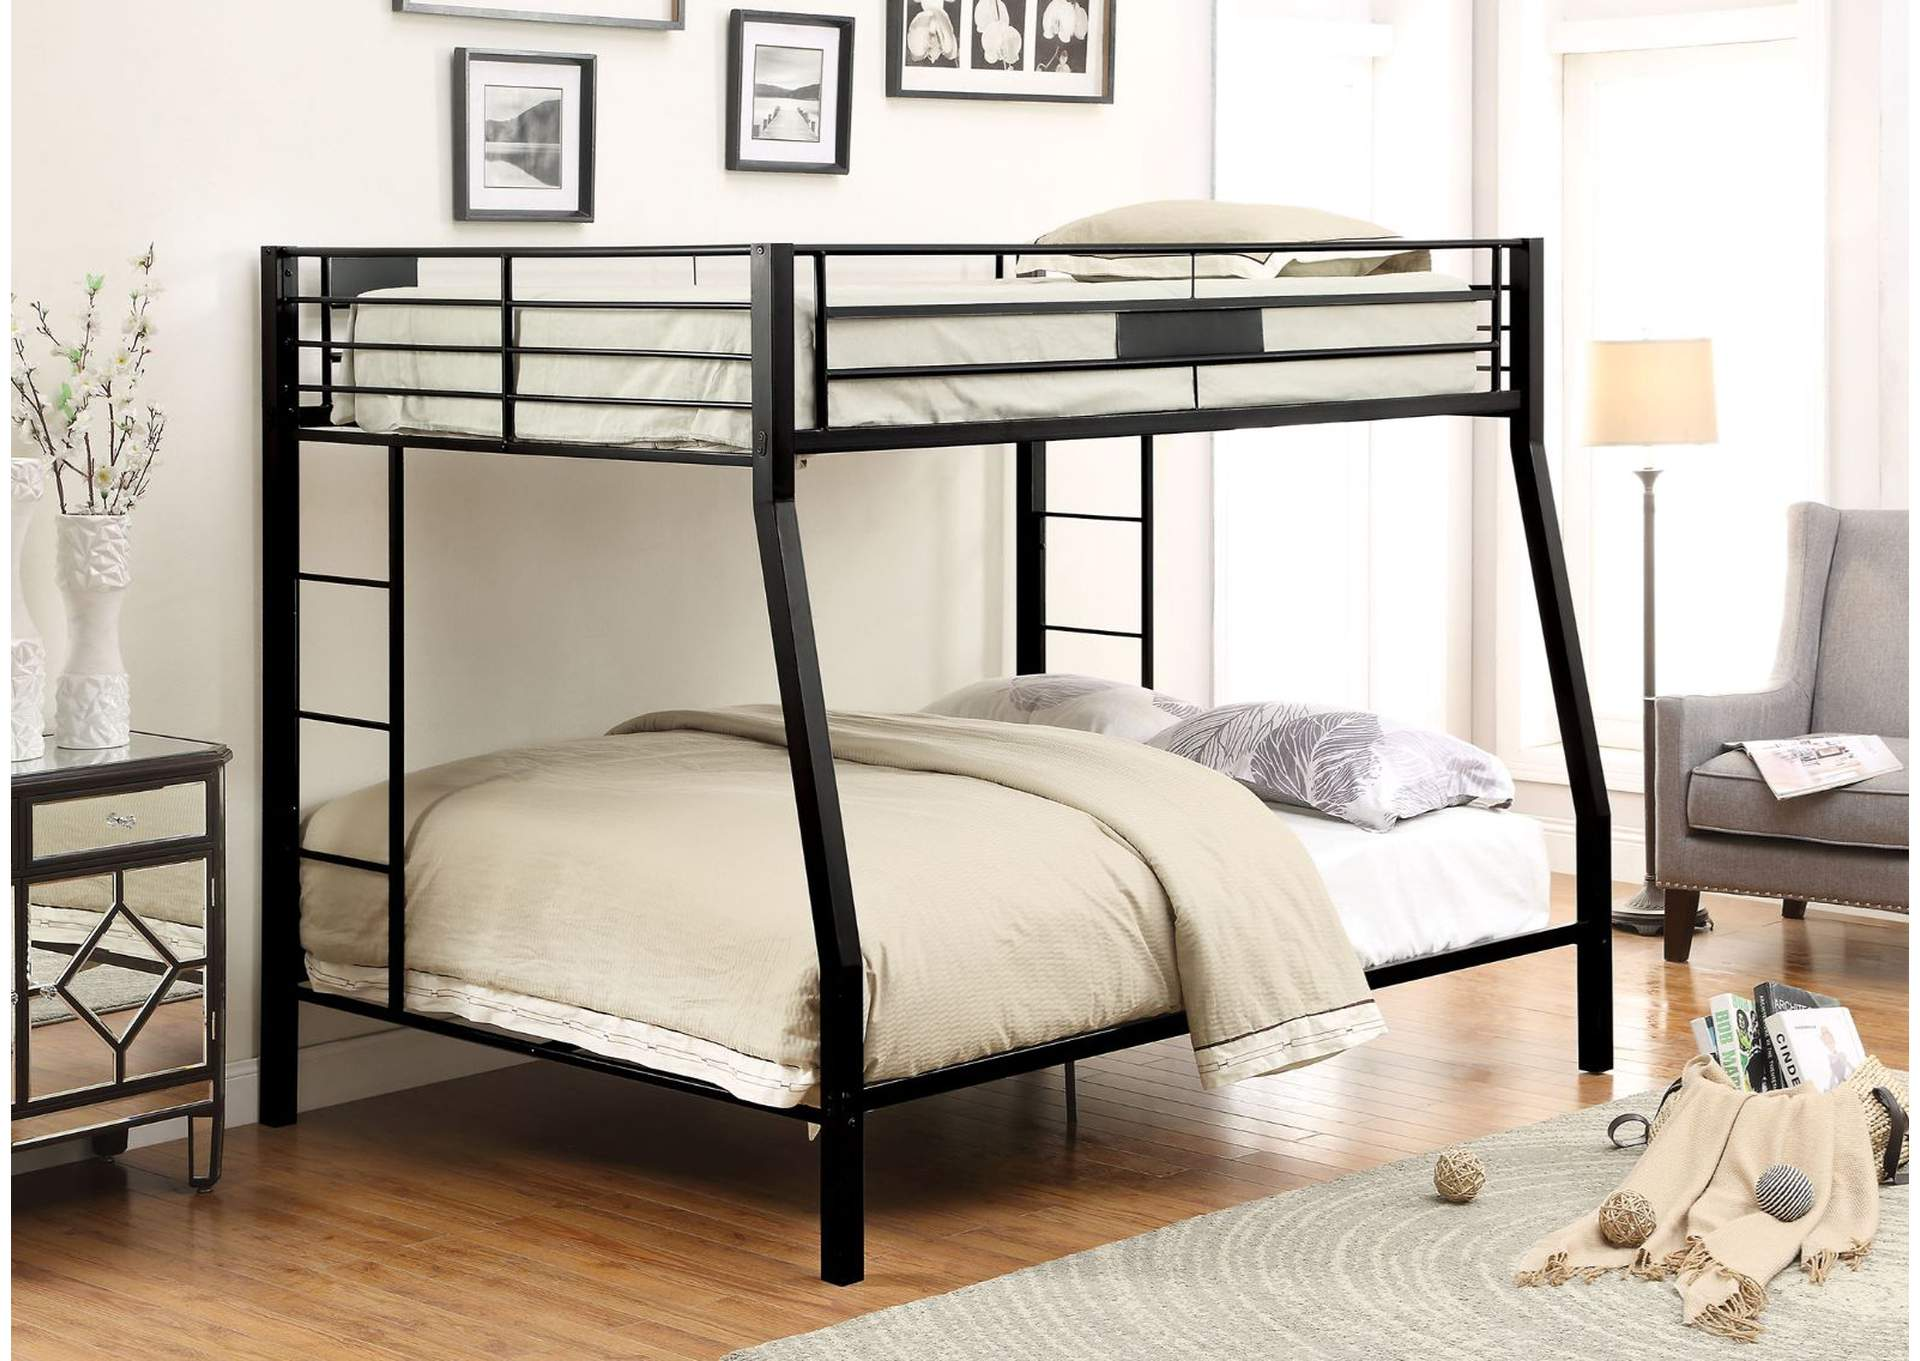 Limbra Sandy Black Full XL/Queen Bunk Bed,Acme